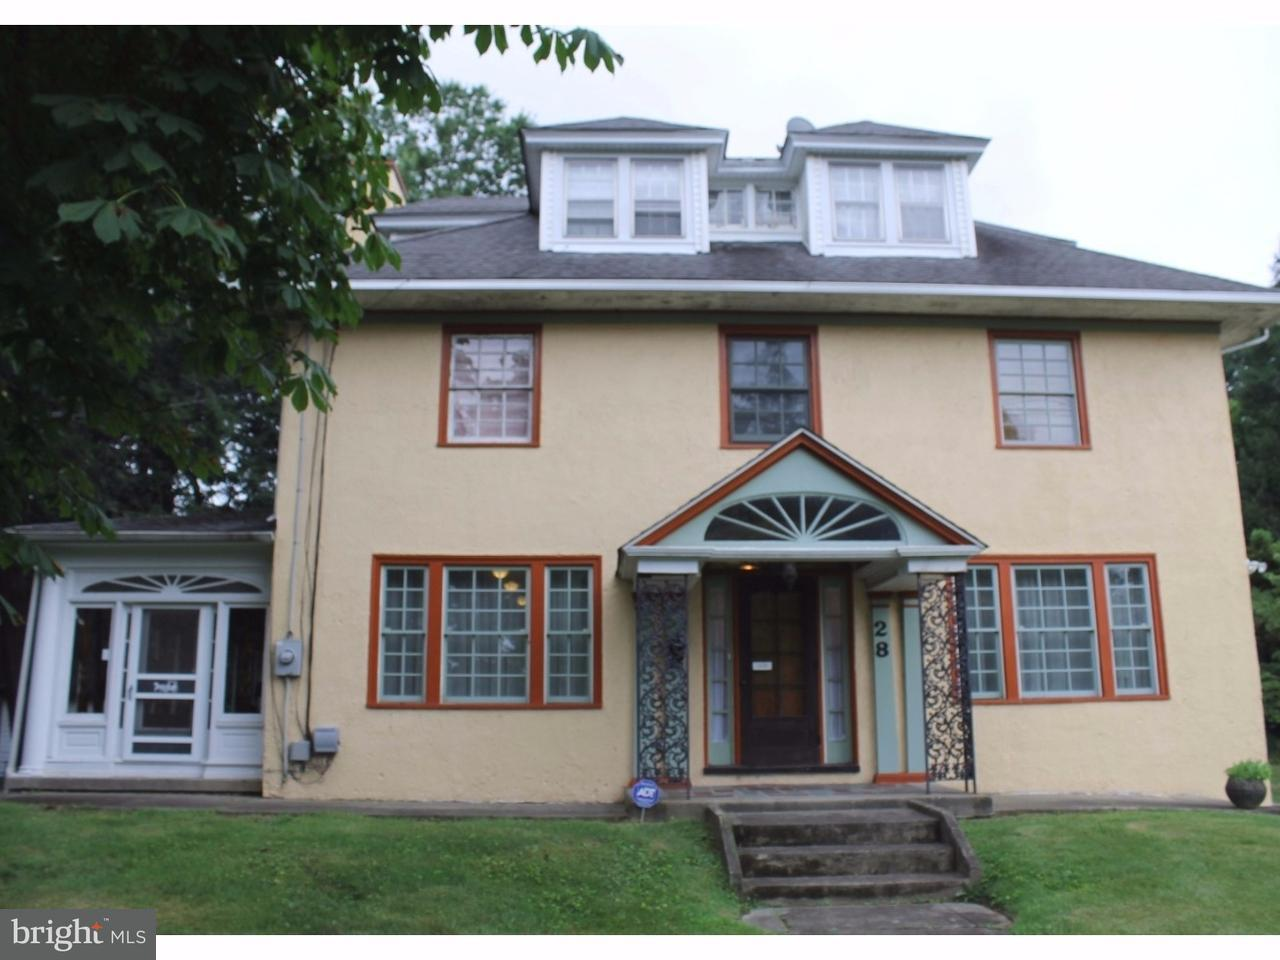 Single Family Home for Sale at 28 S COVE Road Merchantville, New Jersey 08109 United States